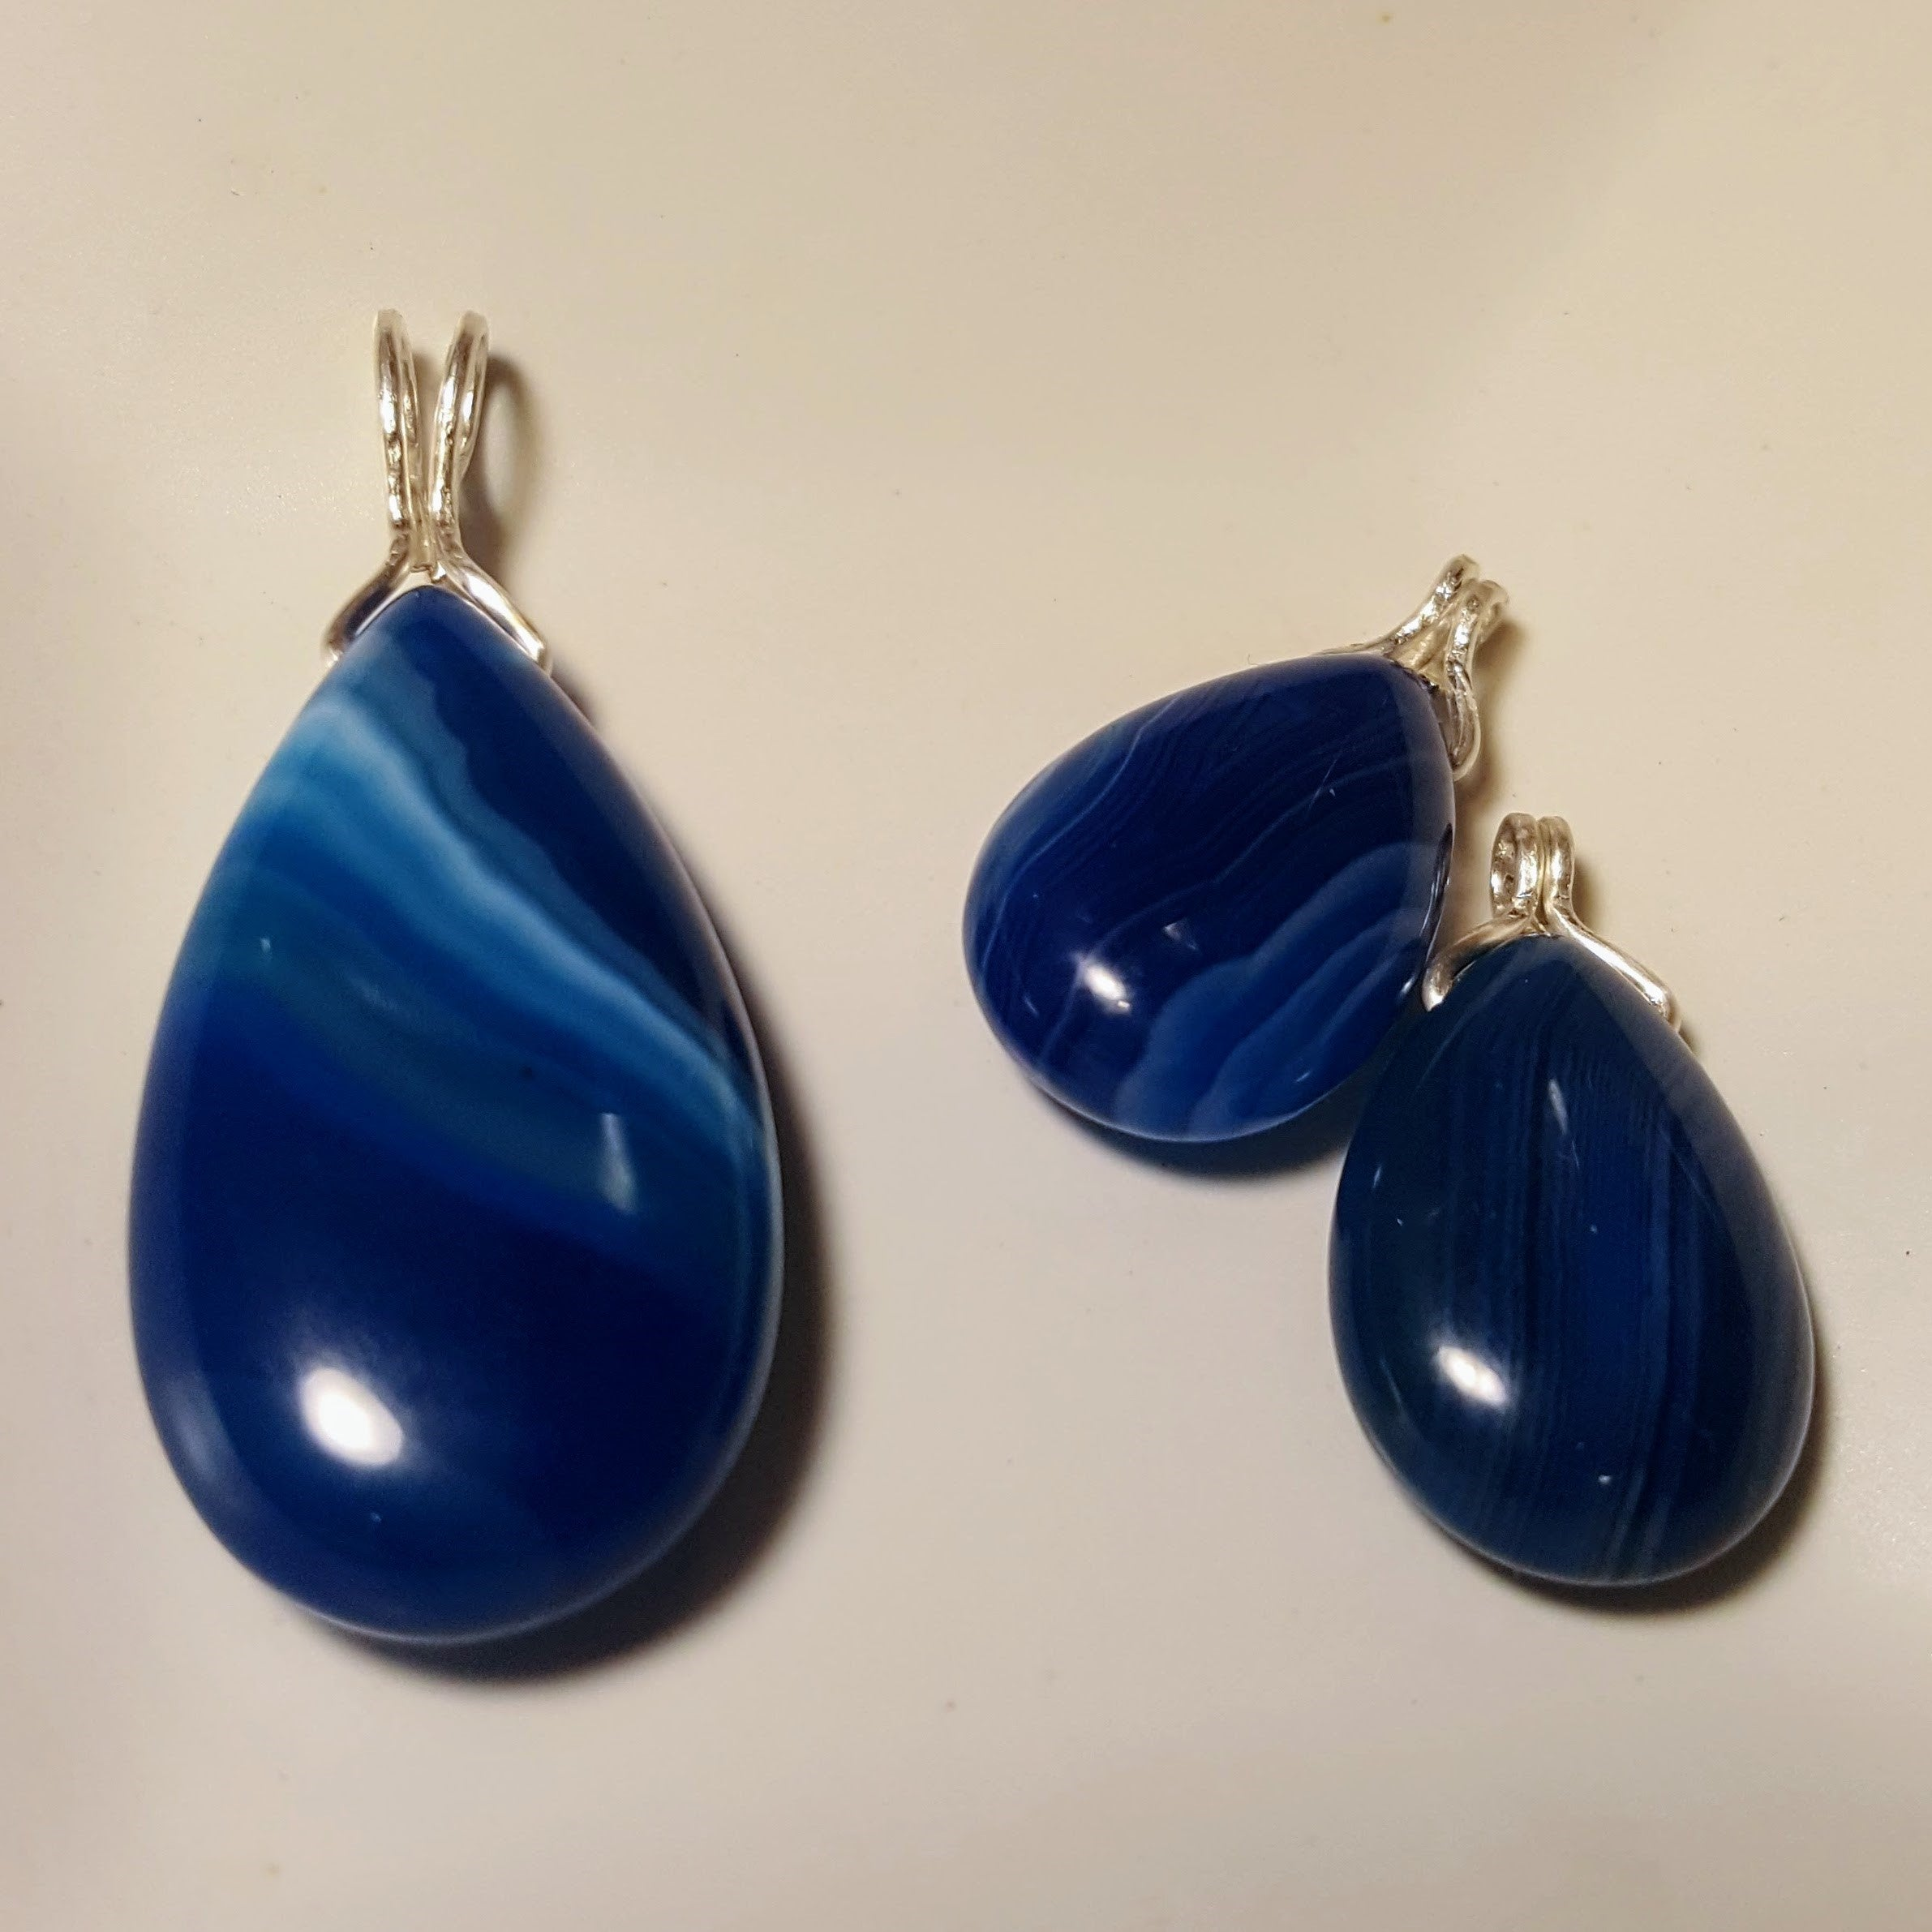 Simple Blue Onyx Pendant and Earrings Set